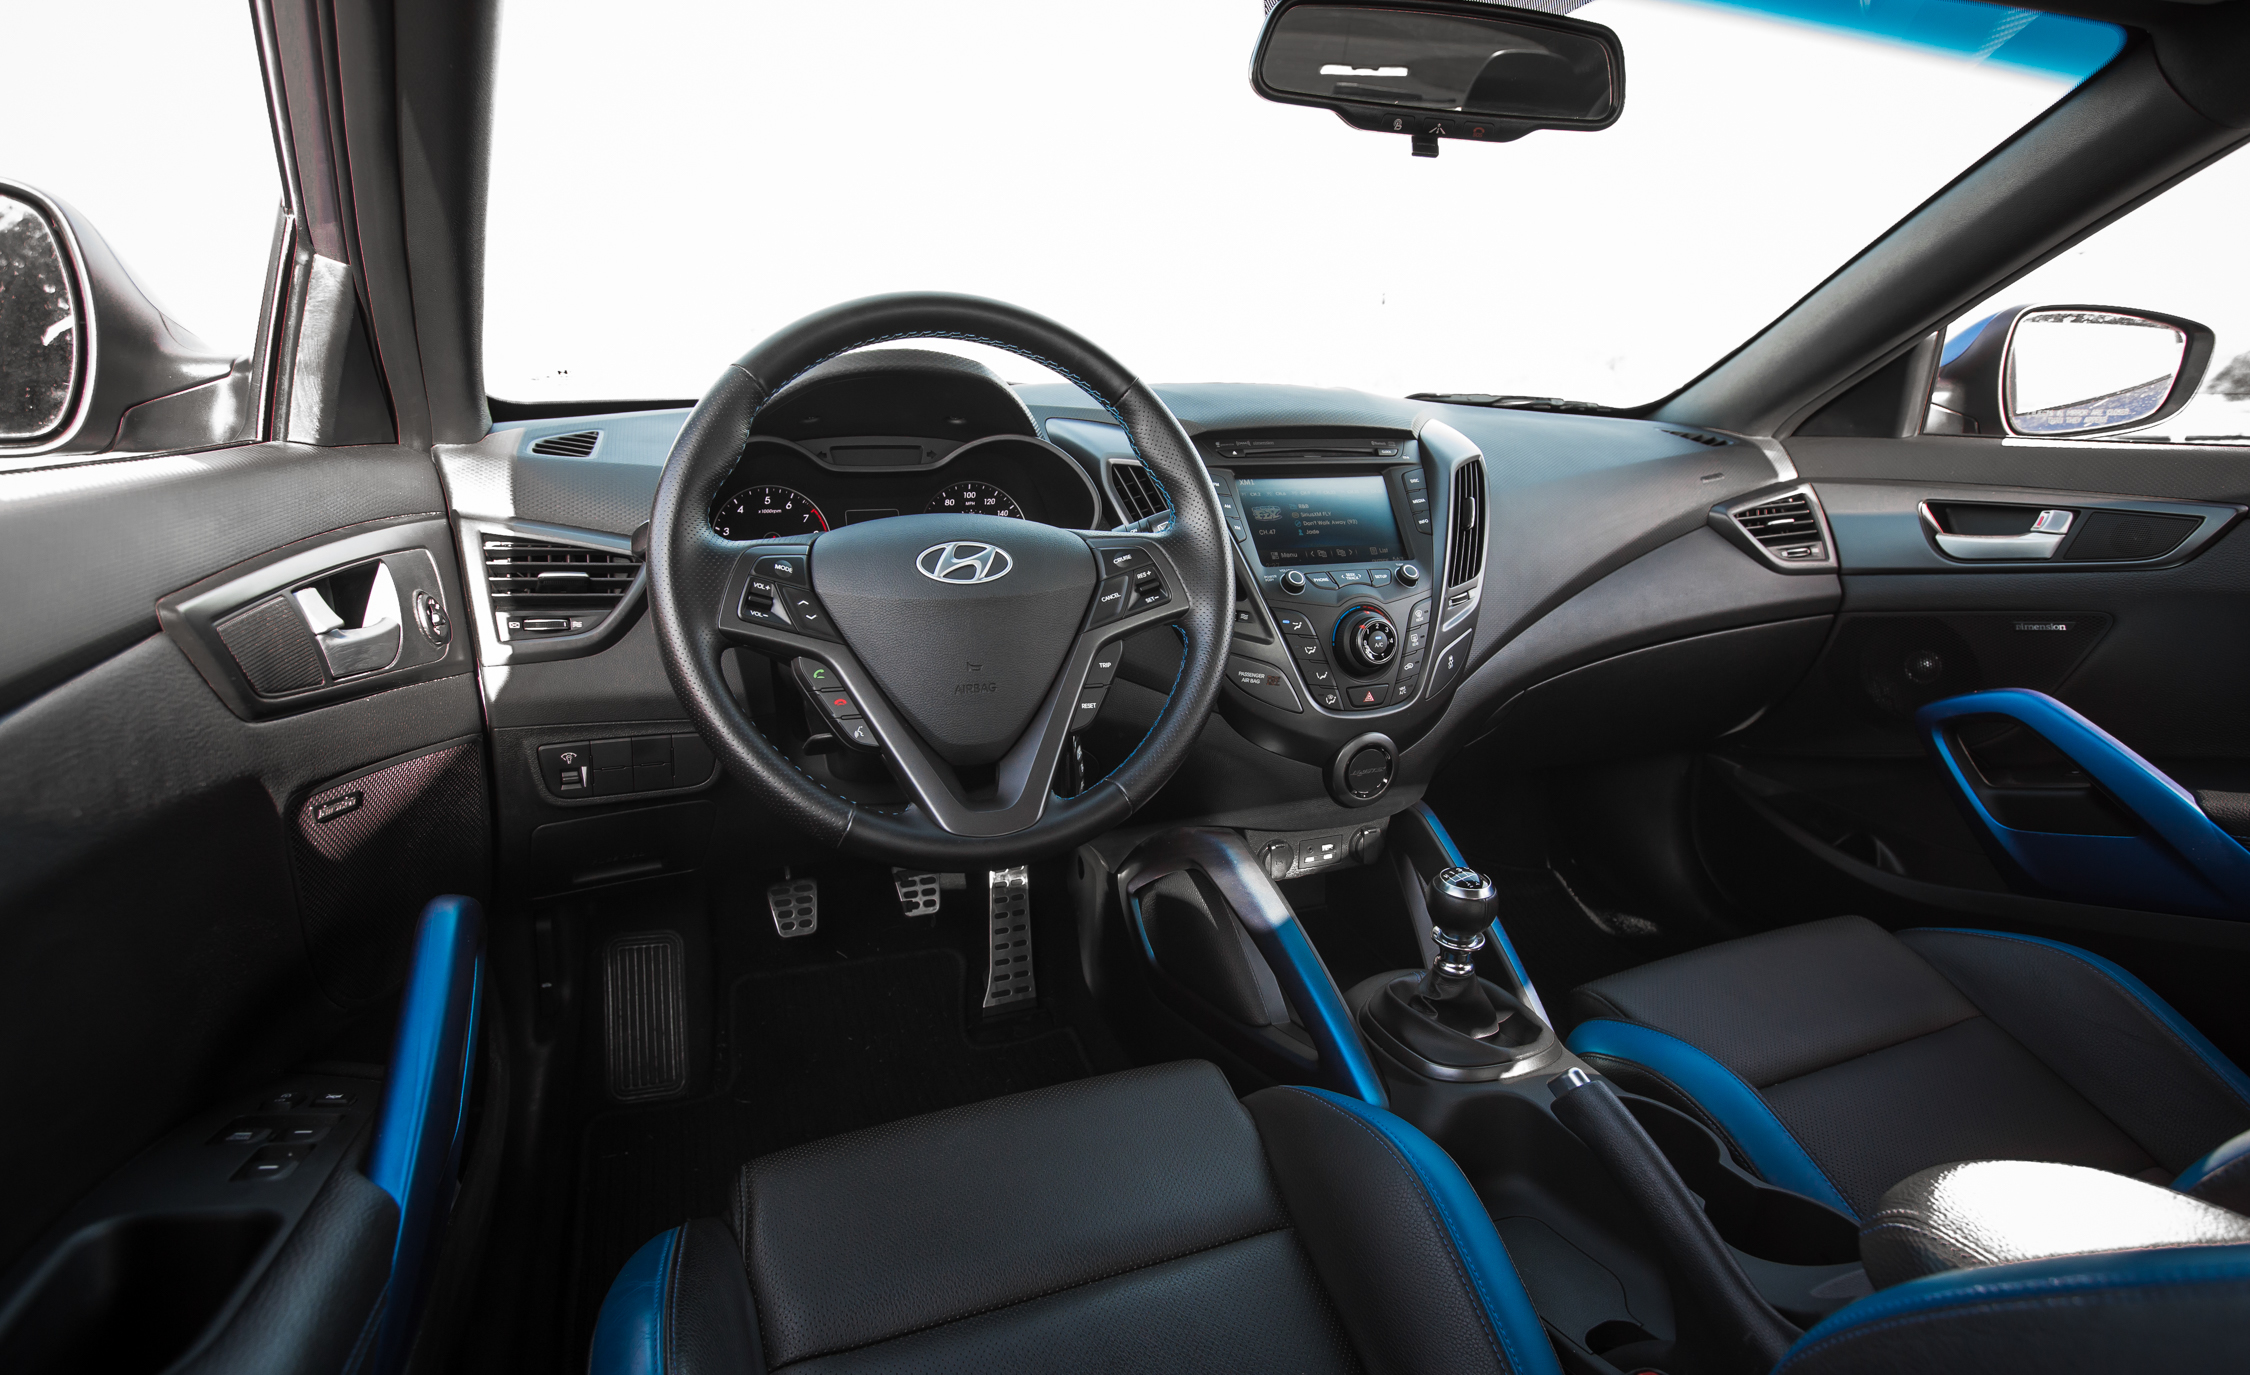 2016 Hyundai Veloster Turbo Rally Edition (Photo 20 of 28)